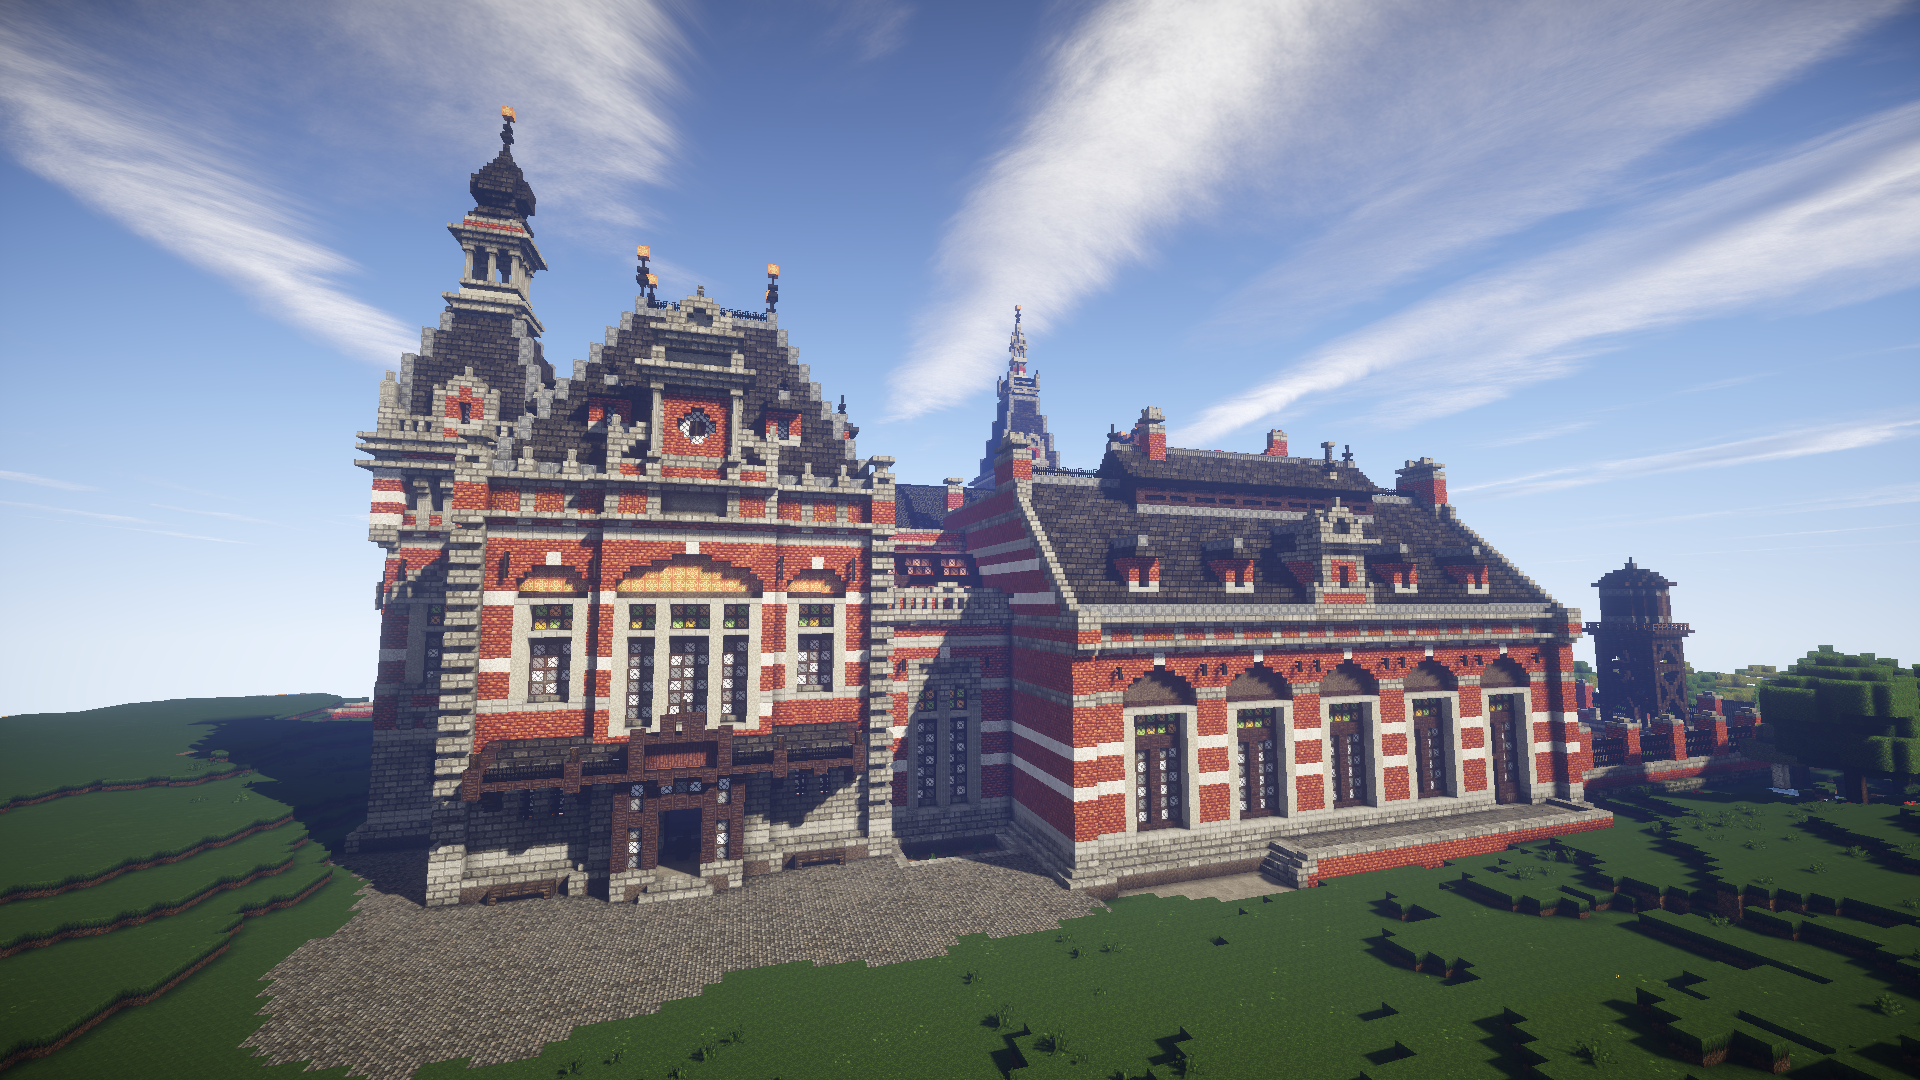 I Have An Awesome Set Of 18 Beautiful Minecraft Wallpapers The Grand Palace Station